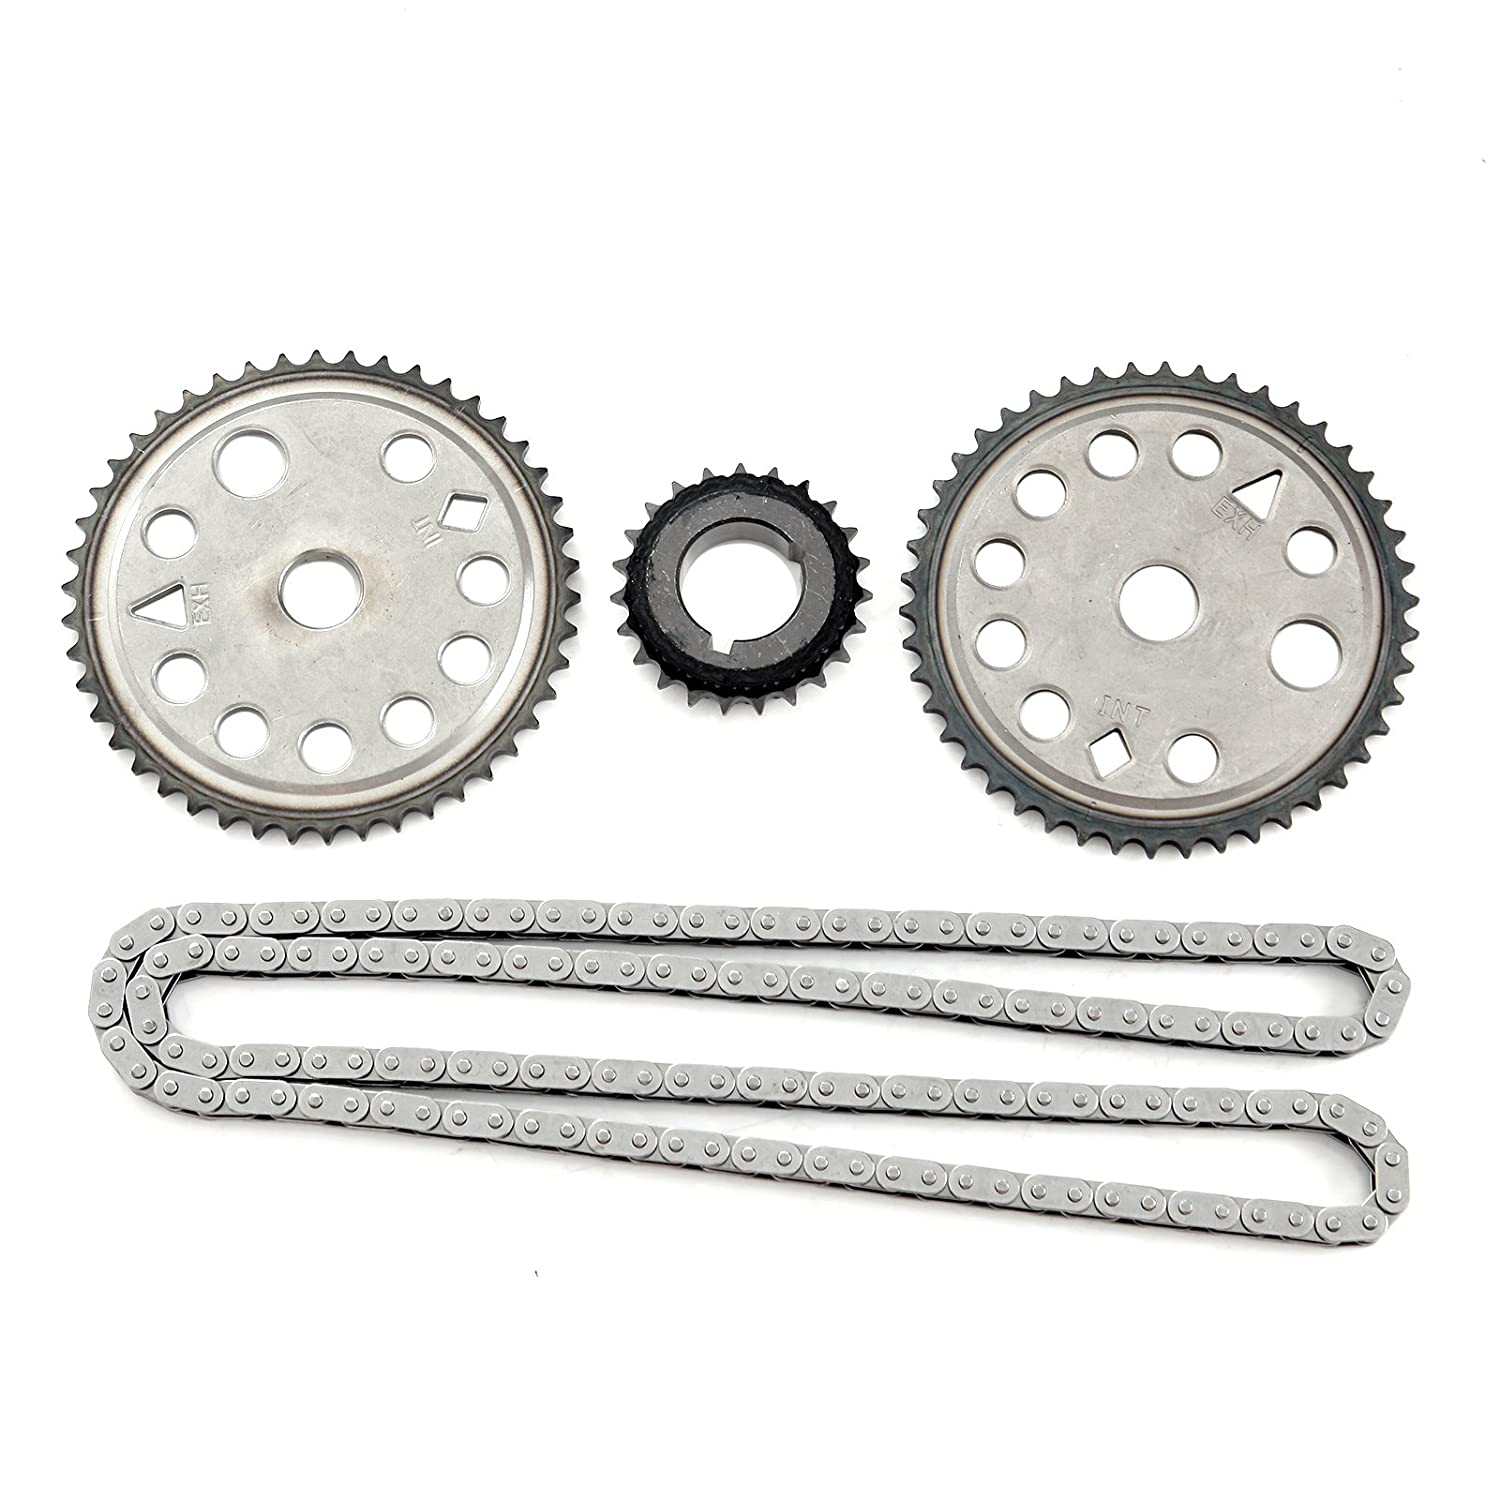 Timing Chain Kit Fits 00 11 Gm 20l 22l Dohc Ecotec 1999 Oldsmobile Alero Serpentine Belt Routing And Diagrams Engine Z22se L61 L42 Lsj Lnf Set Automotive